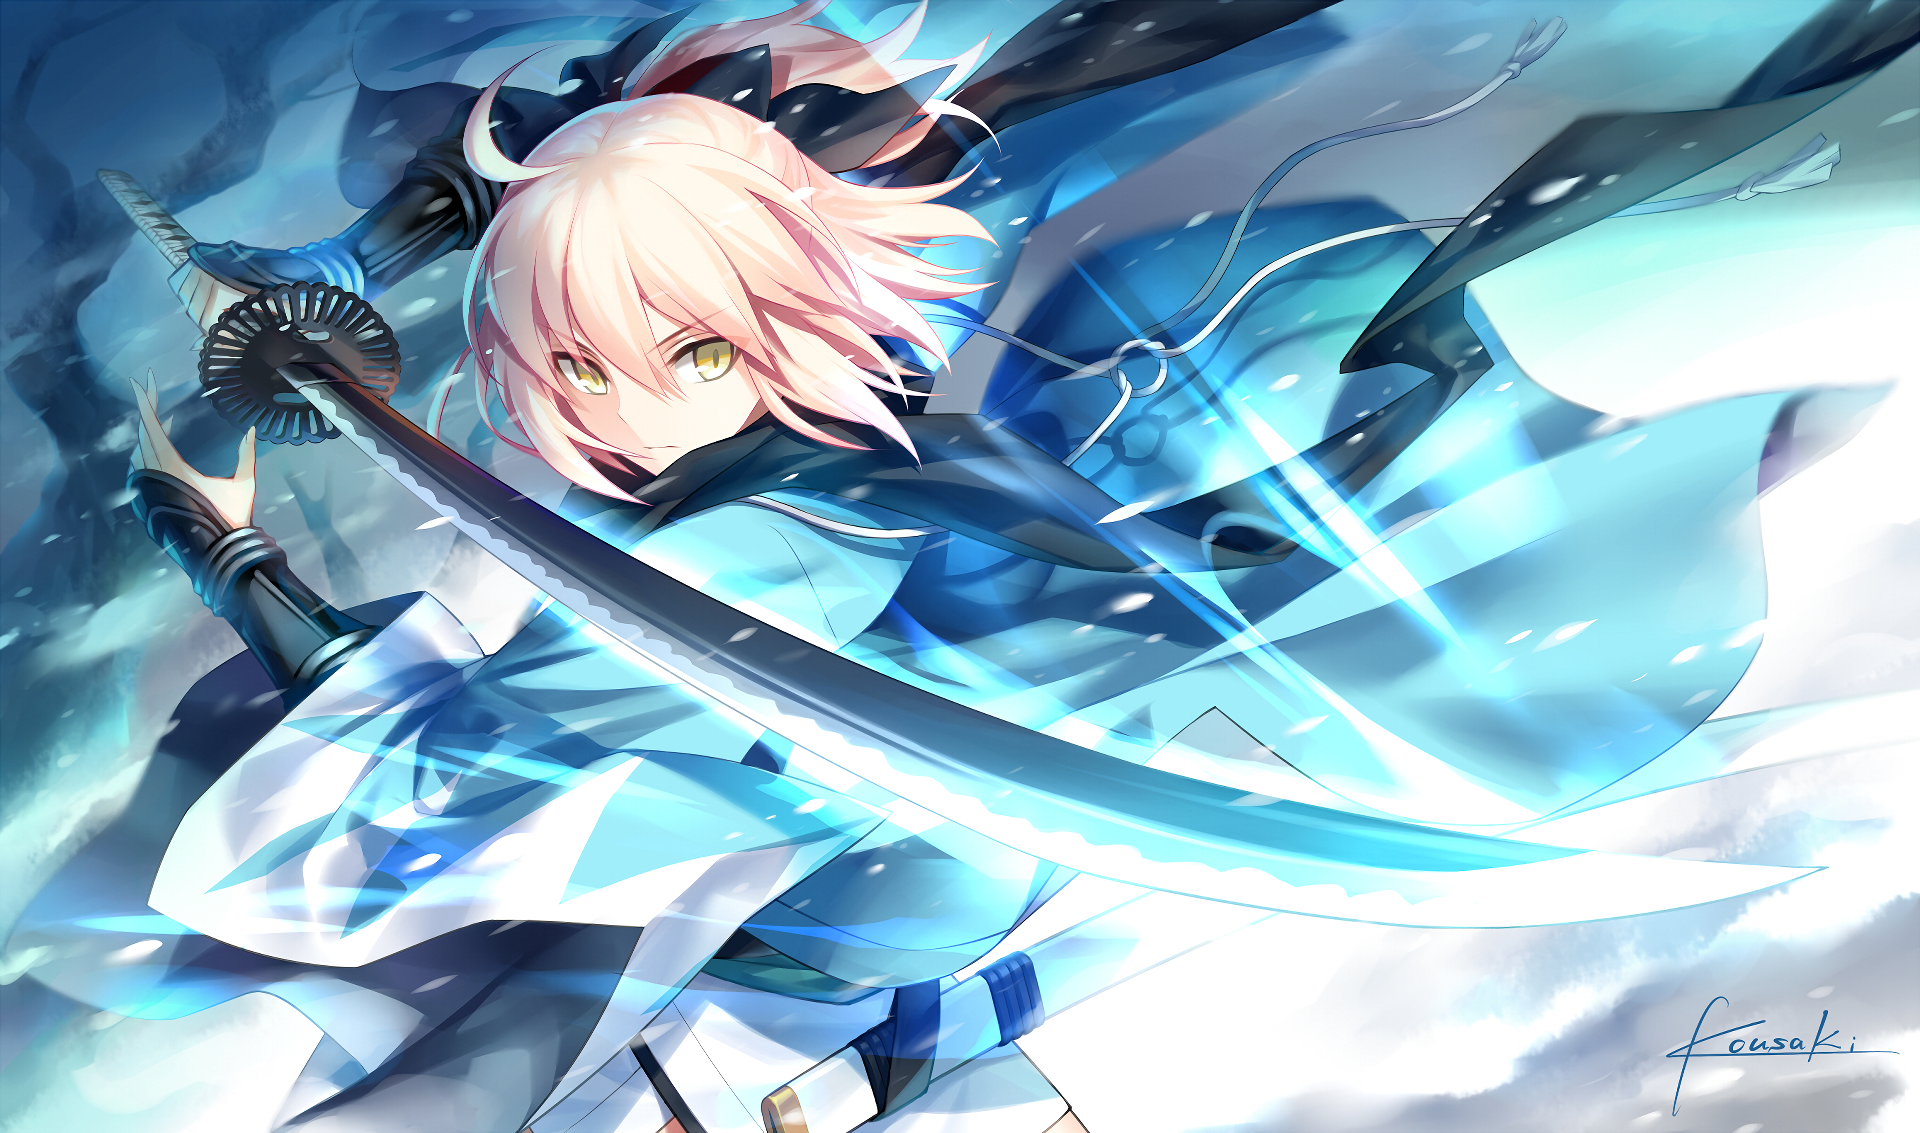 158 Sakura Saber Hd Wallpapers Background Images Wallpaper Abyss